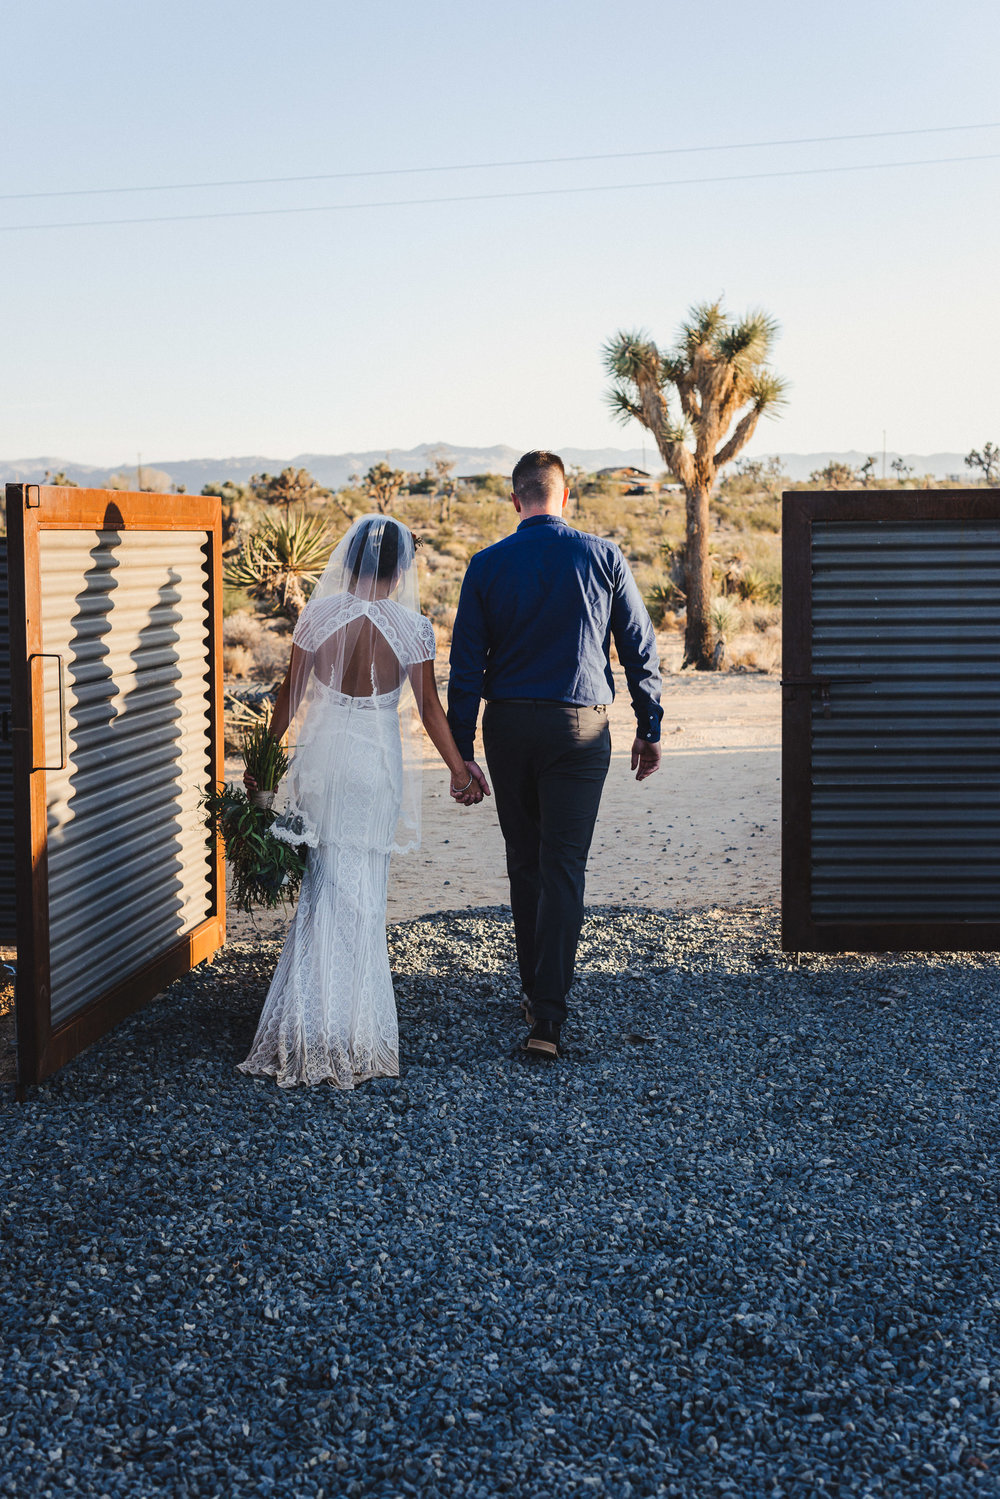 sJ + N - Joshua Tree, CA - 08 Bride + Groom-9.jpg